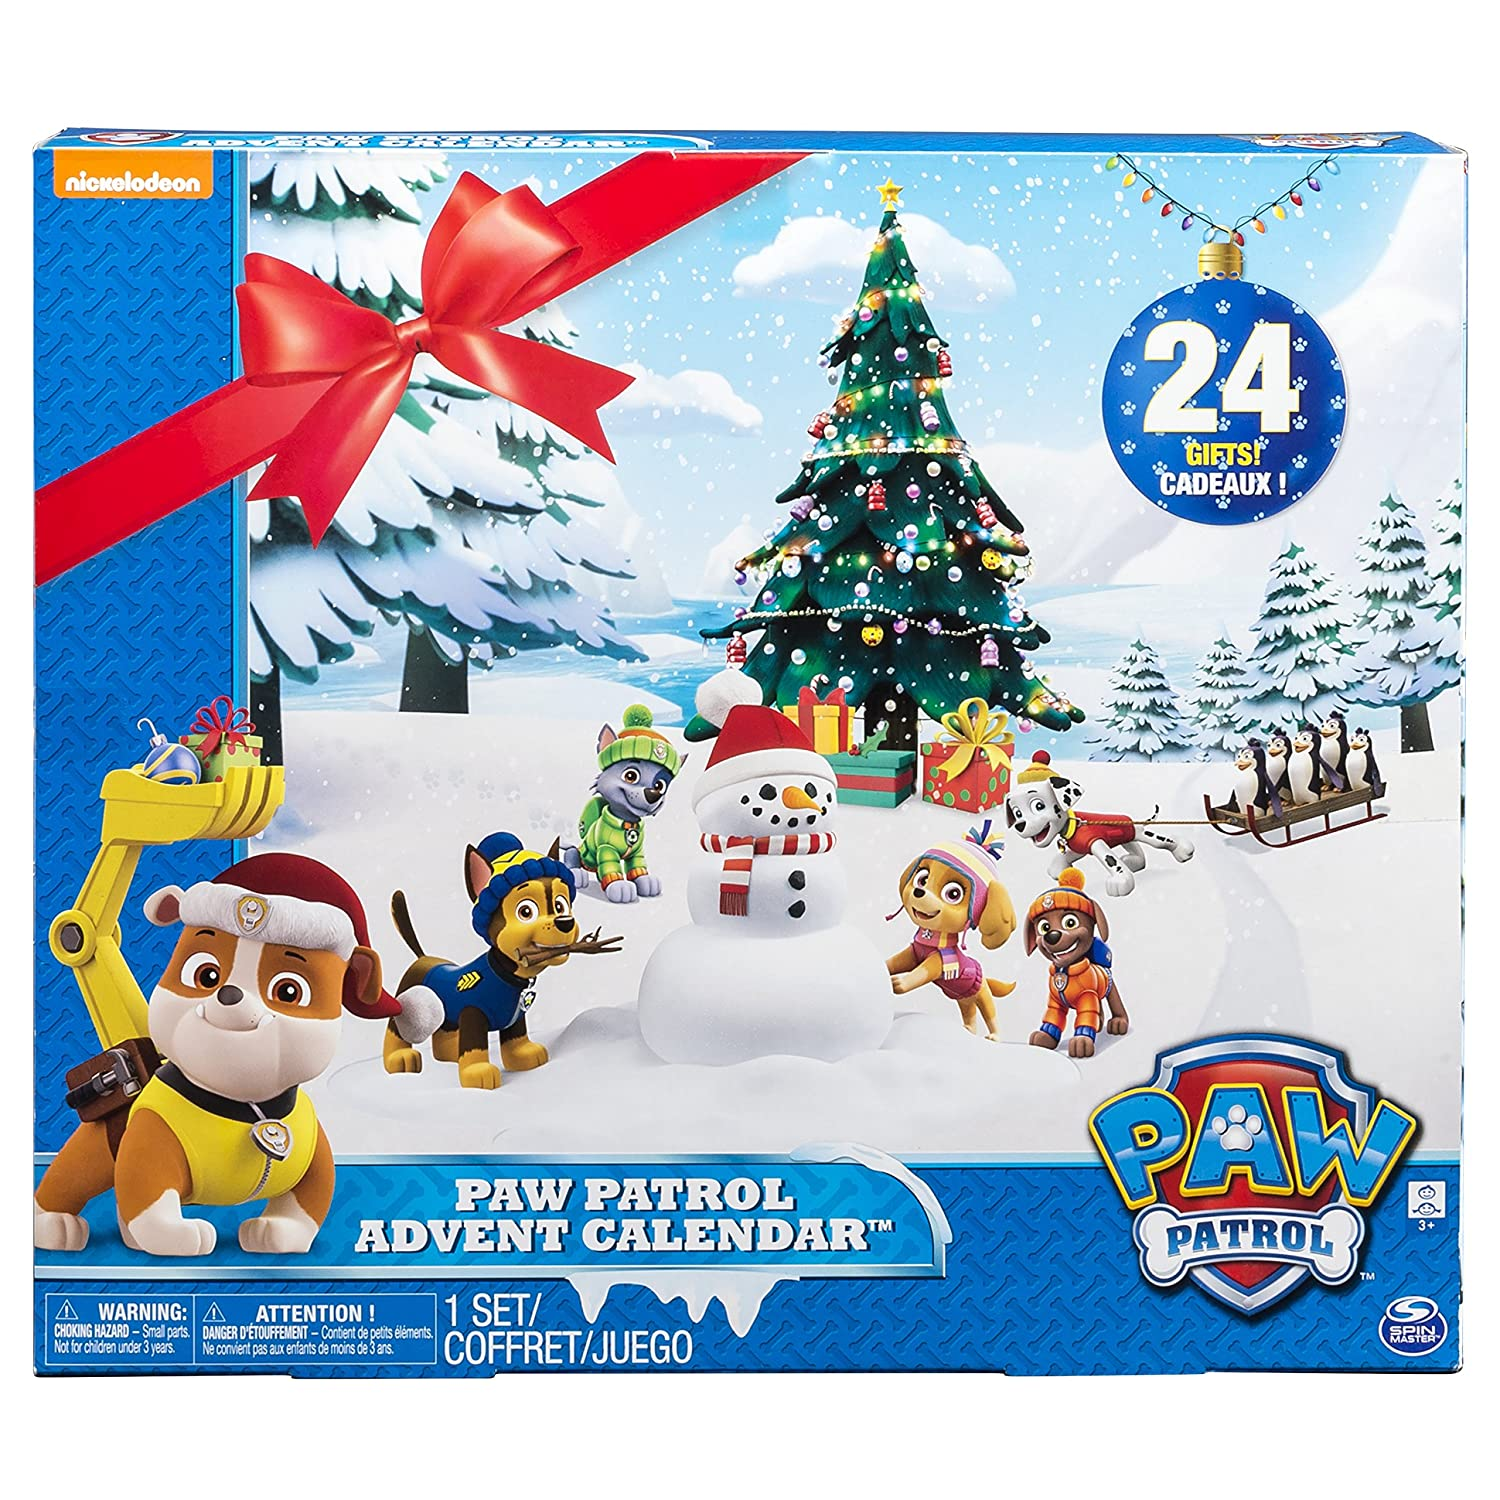 Paw Patrol Advent Calendar with 24 Collectible Plastic Figures Spin Master 6037924